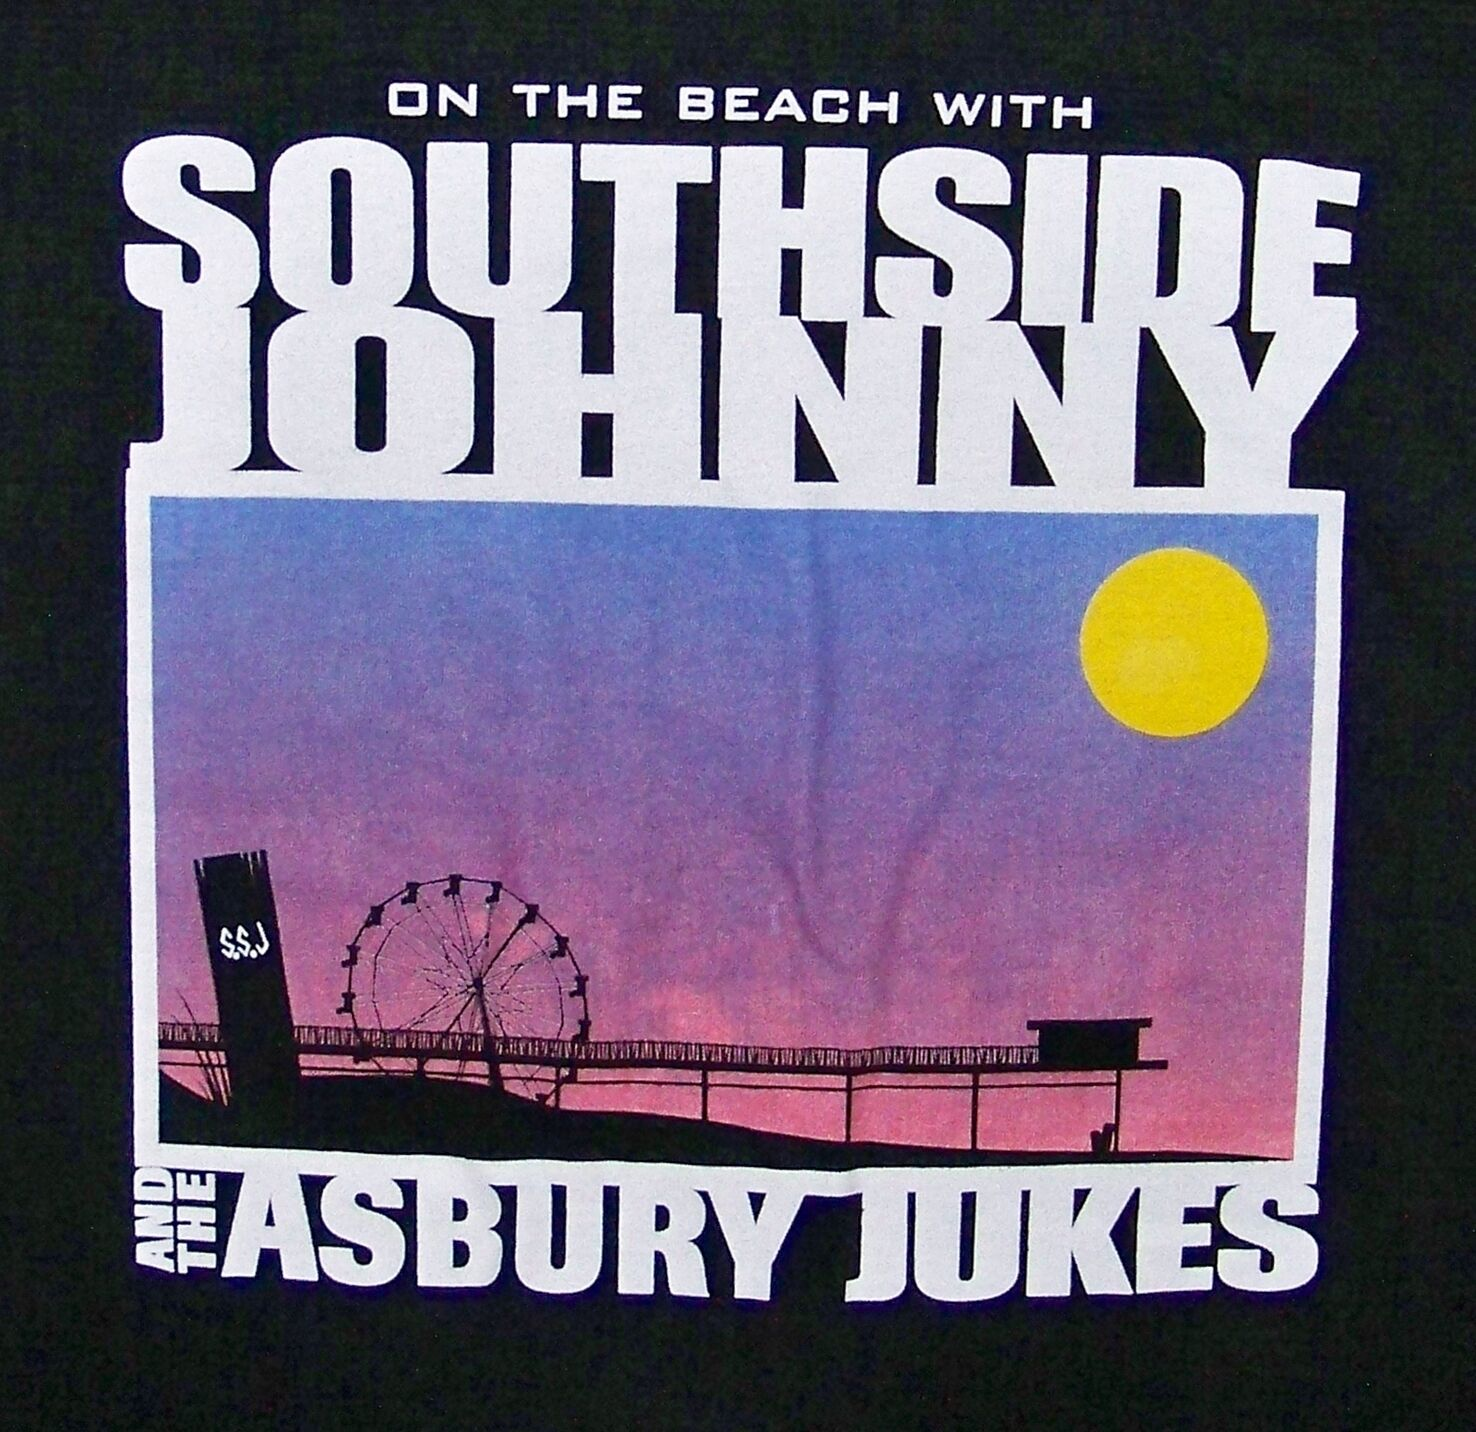 SOUTHSIDE JOHNNY AND ASBURY JUKES SUMMER TOUR 1999 USA   VINTAGE T-SHIRT SIZE M